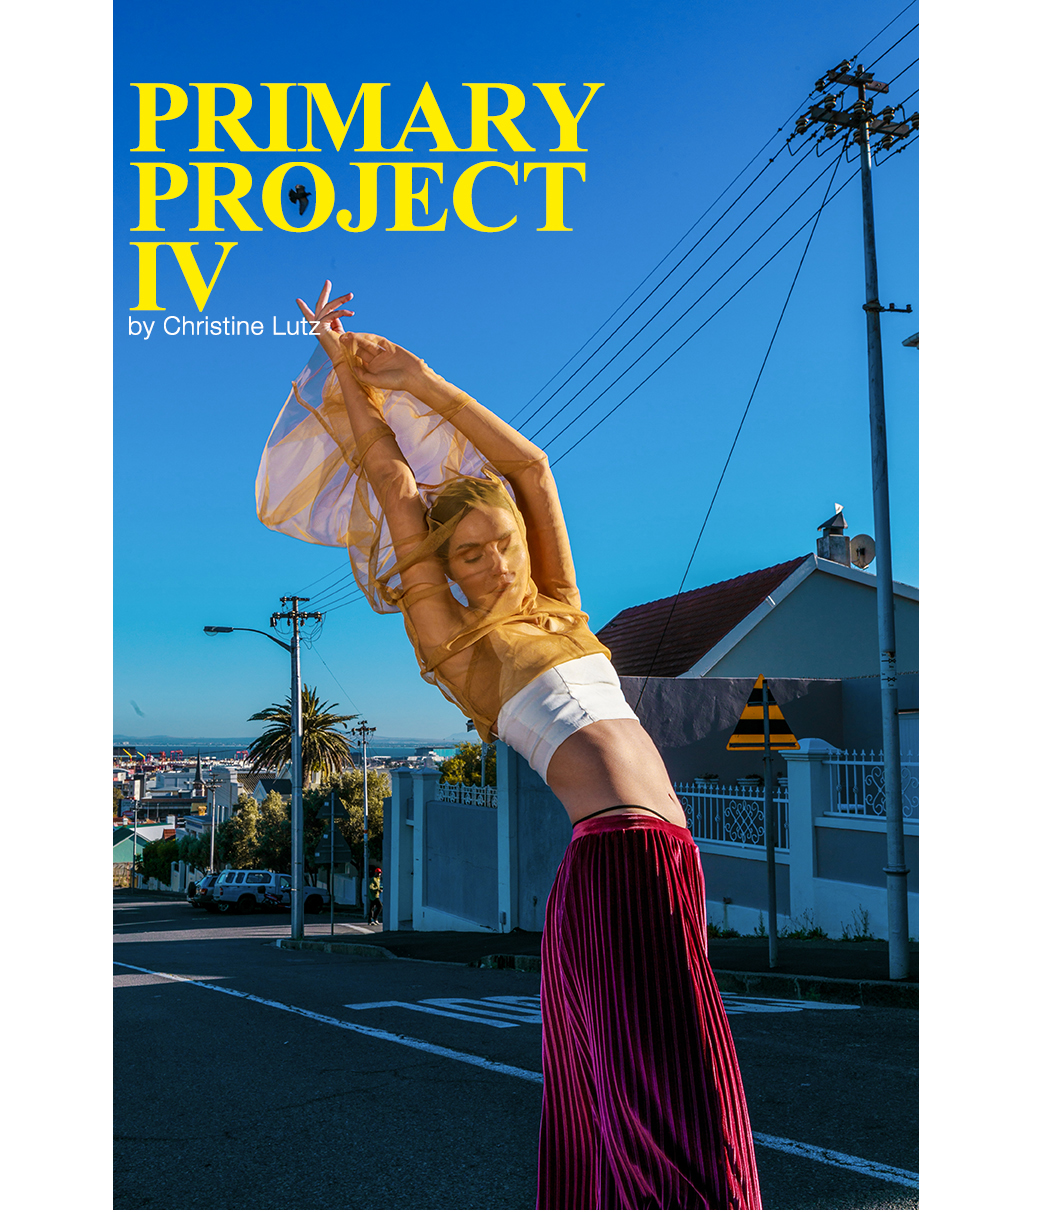 Primary Project IV